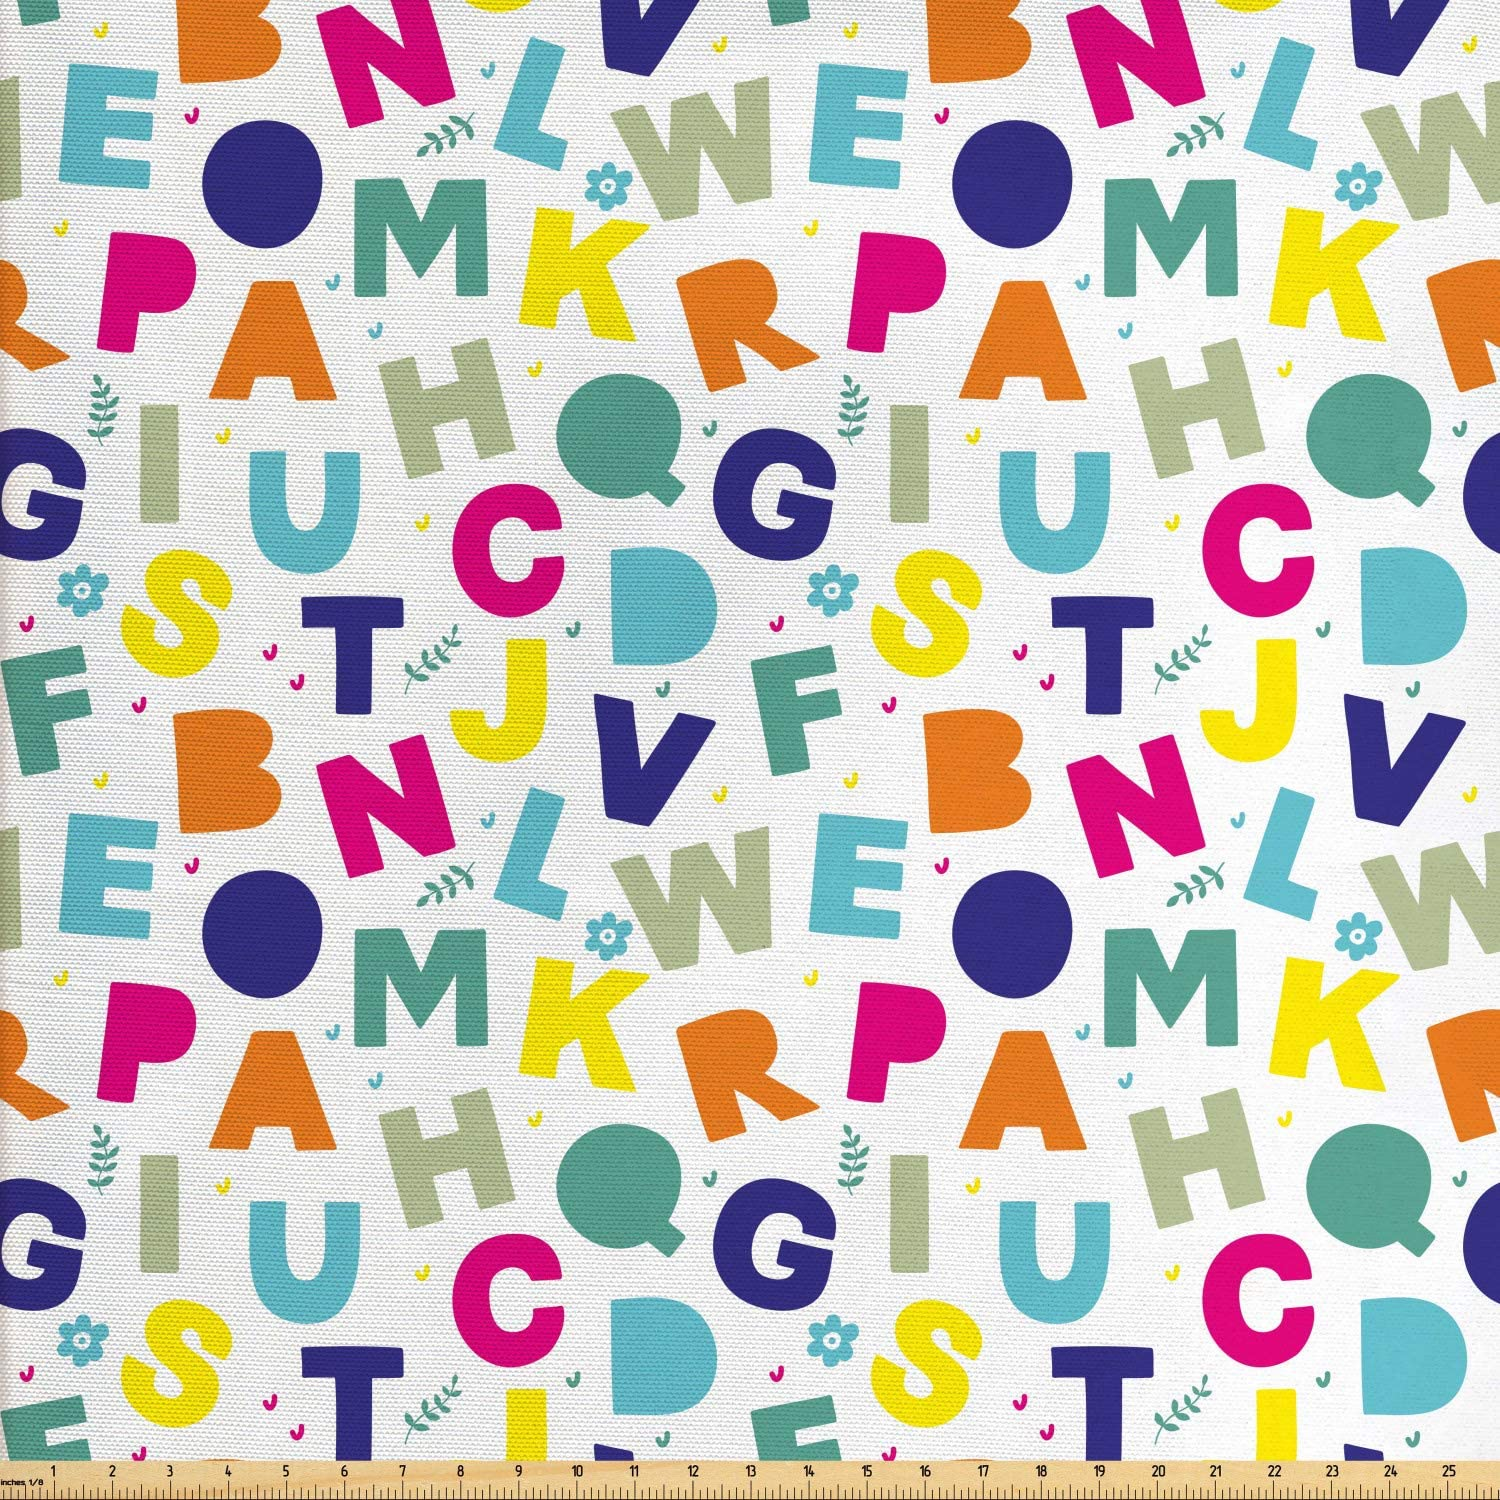 Ambesonne Alphabet Fabric by The Yard, Asymmetric Repetition of Simple Colorful Letters with Flowers and Leafy Branches, Decorative Fabric for Upholstery and Home Accents, 1 Yard, Multicolor